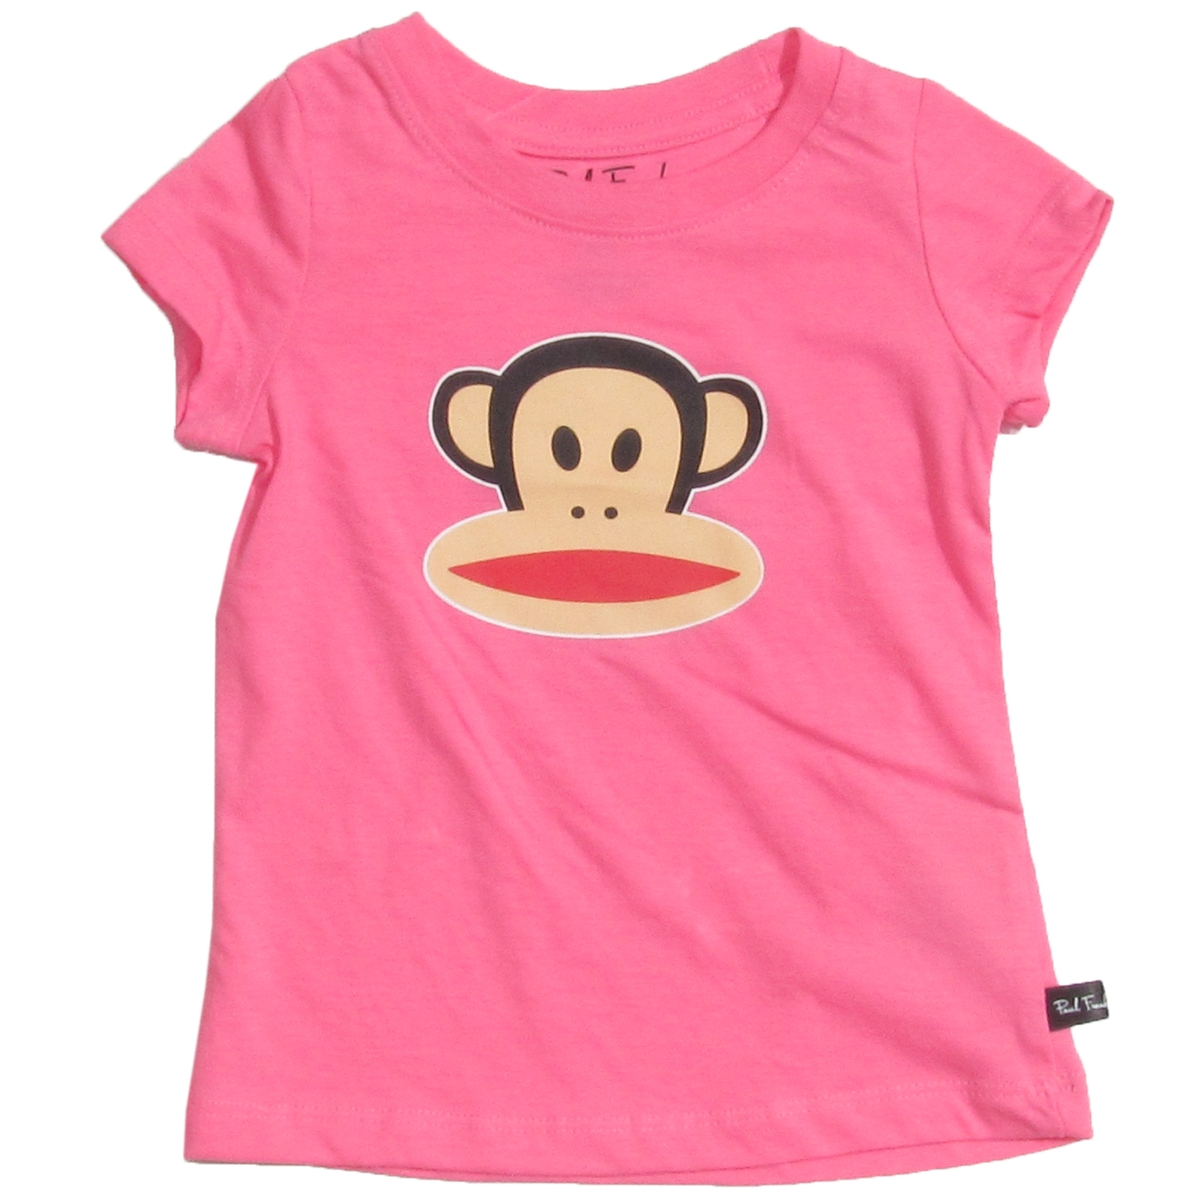 PAUL FRANK T-SHIRTS more images BYYPTJT